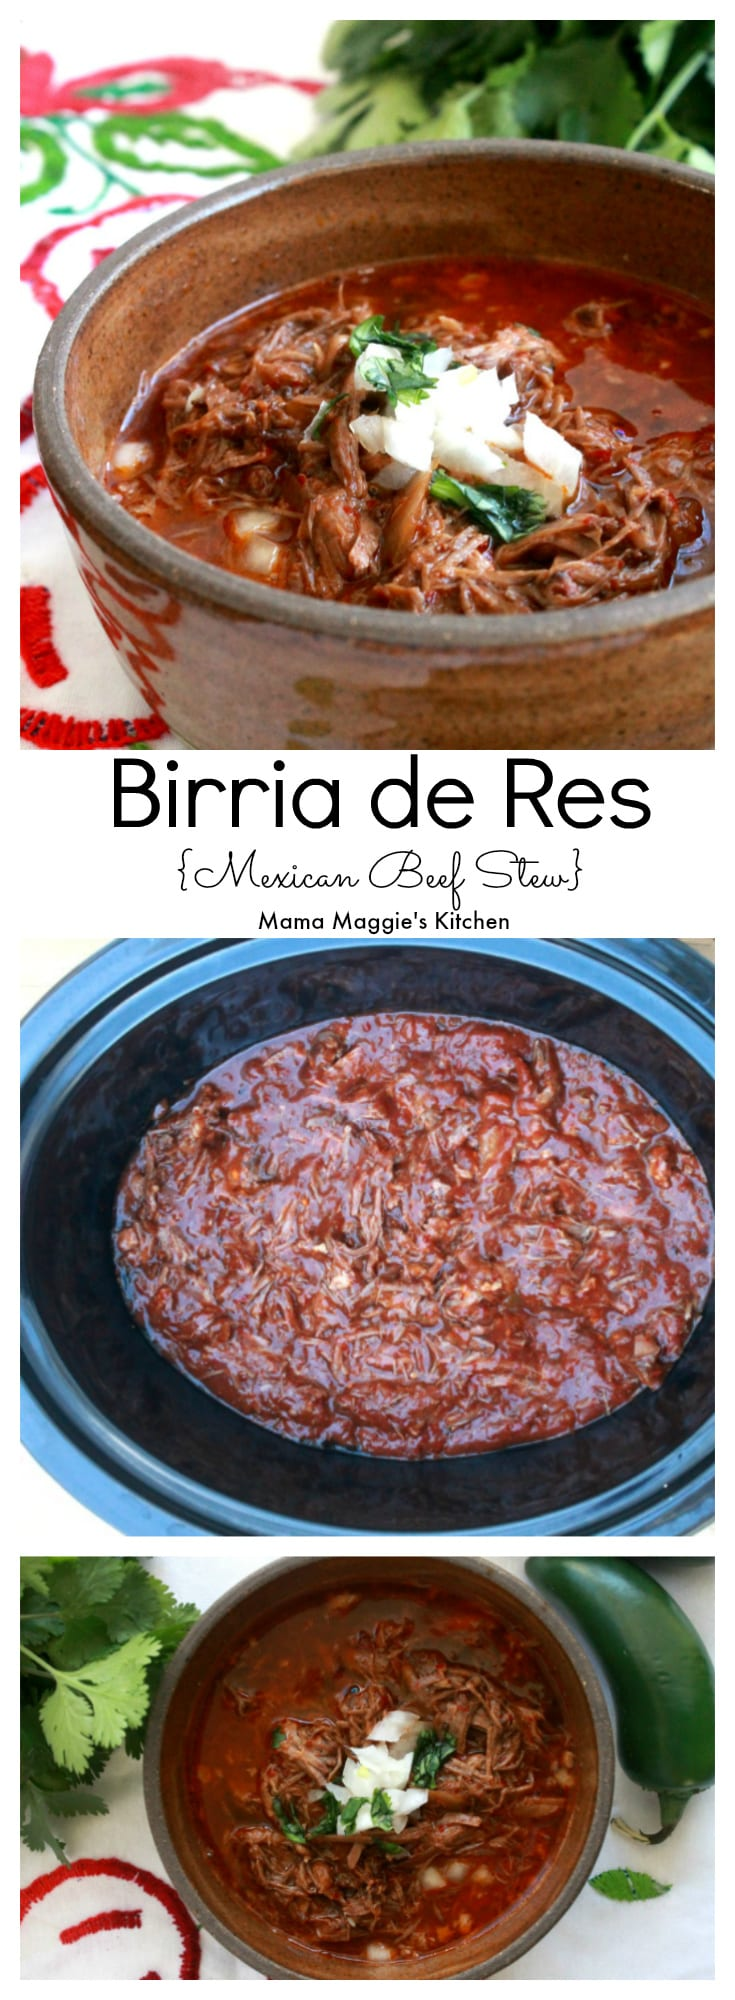 A big bowl of Birria de Res, or Mexican Beef stew, is the ultimate comfort food. Deep robust Mexican Food flavors that will make your tastebuds very happy. With Video and step-by-step pictures. Enjoy! by Mama Maggie's Kitchen